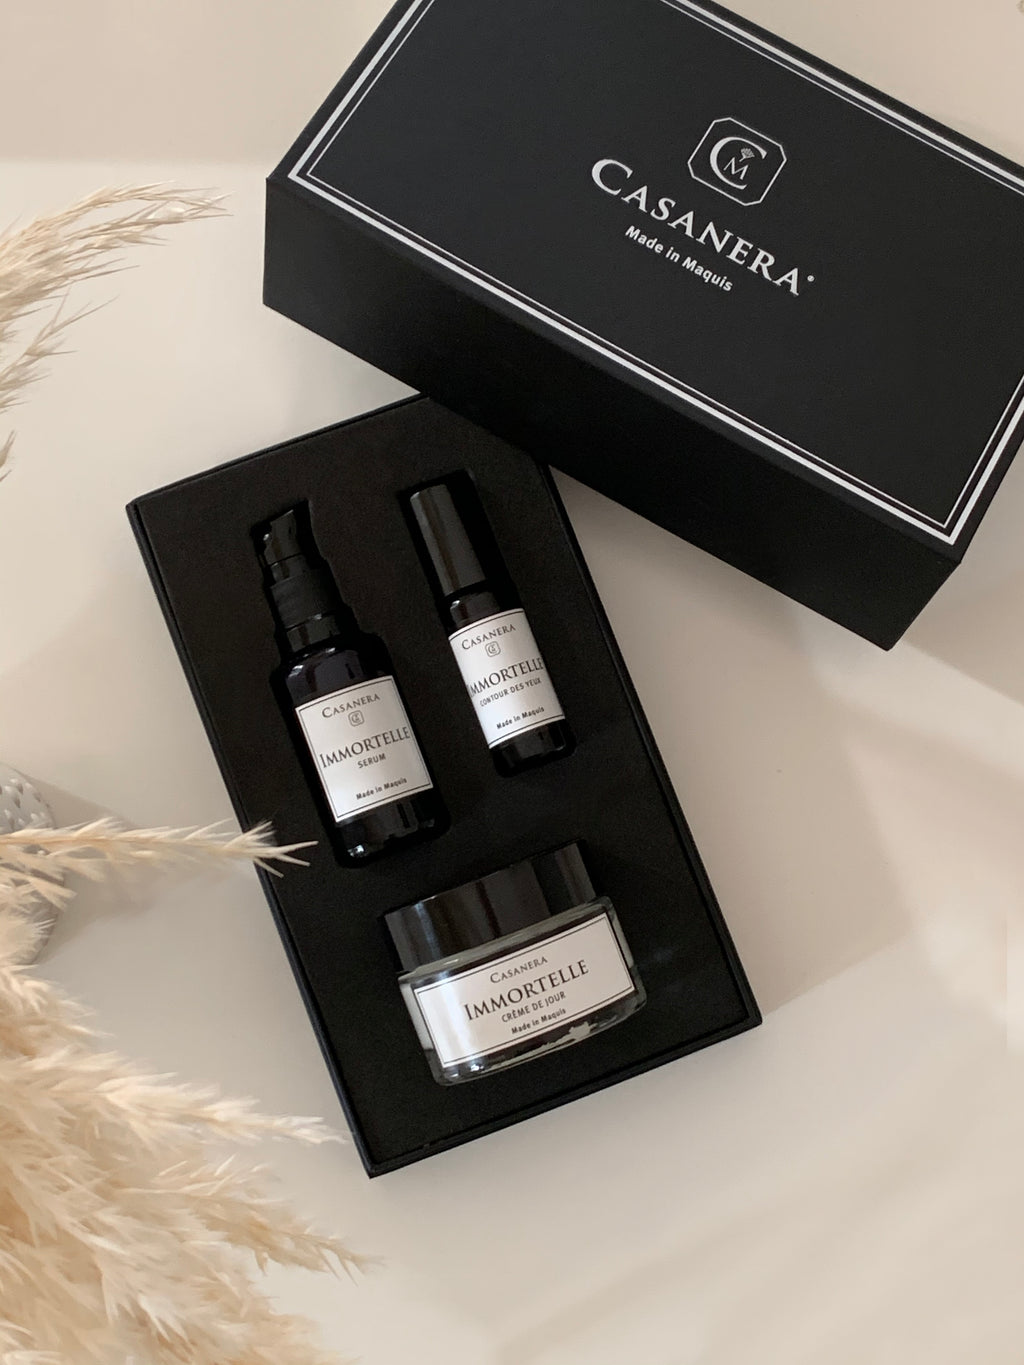 Casanera - Coffret Immortelle